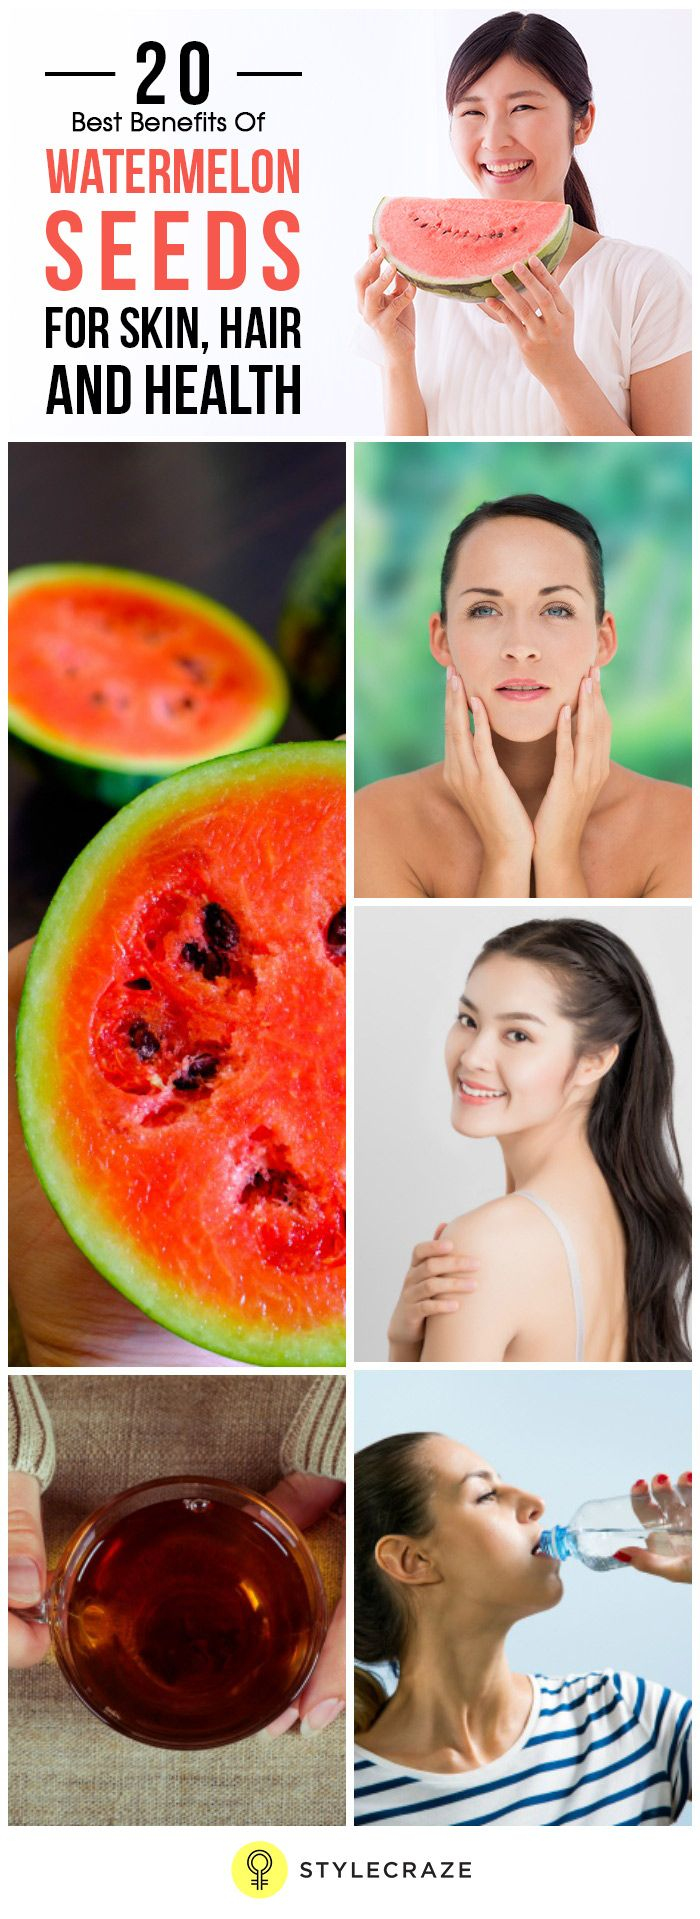 9 Best Benefits Of Watermelon Seeds For Skin, Hair, And Health forecasting